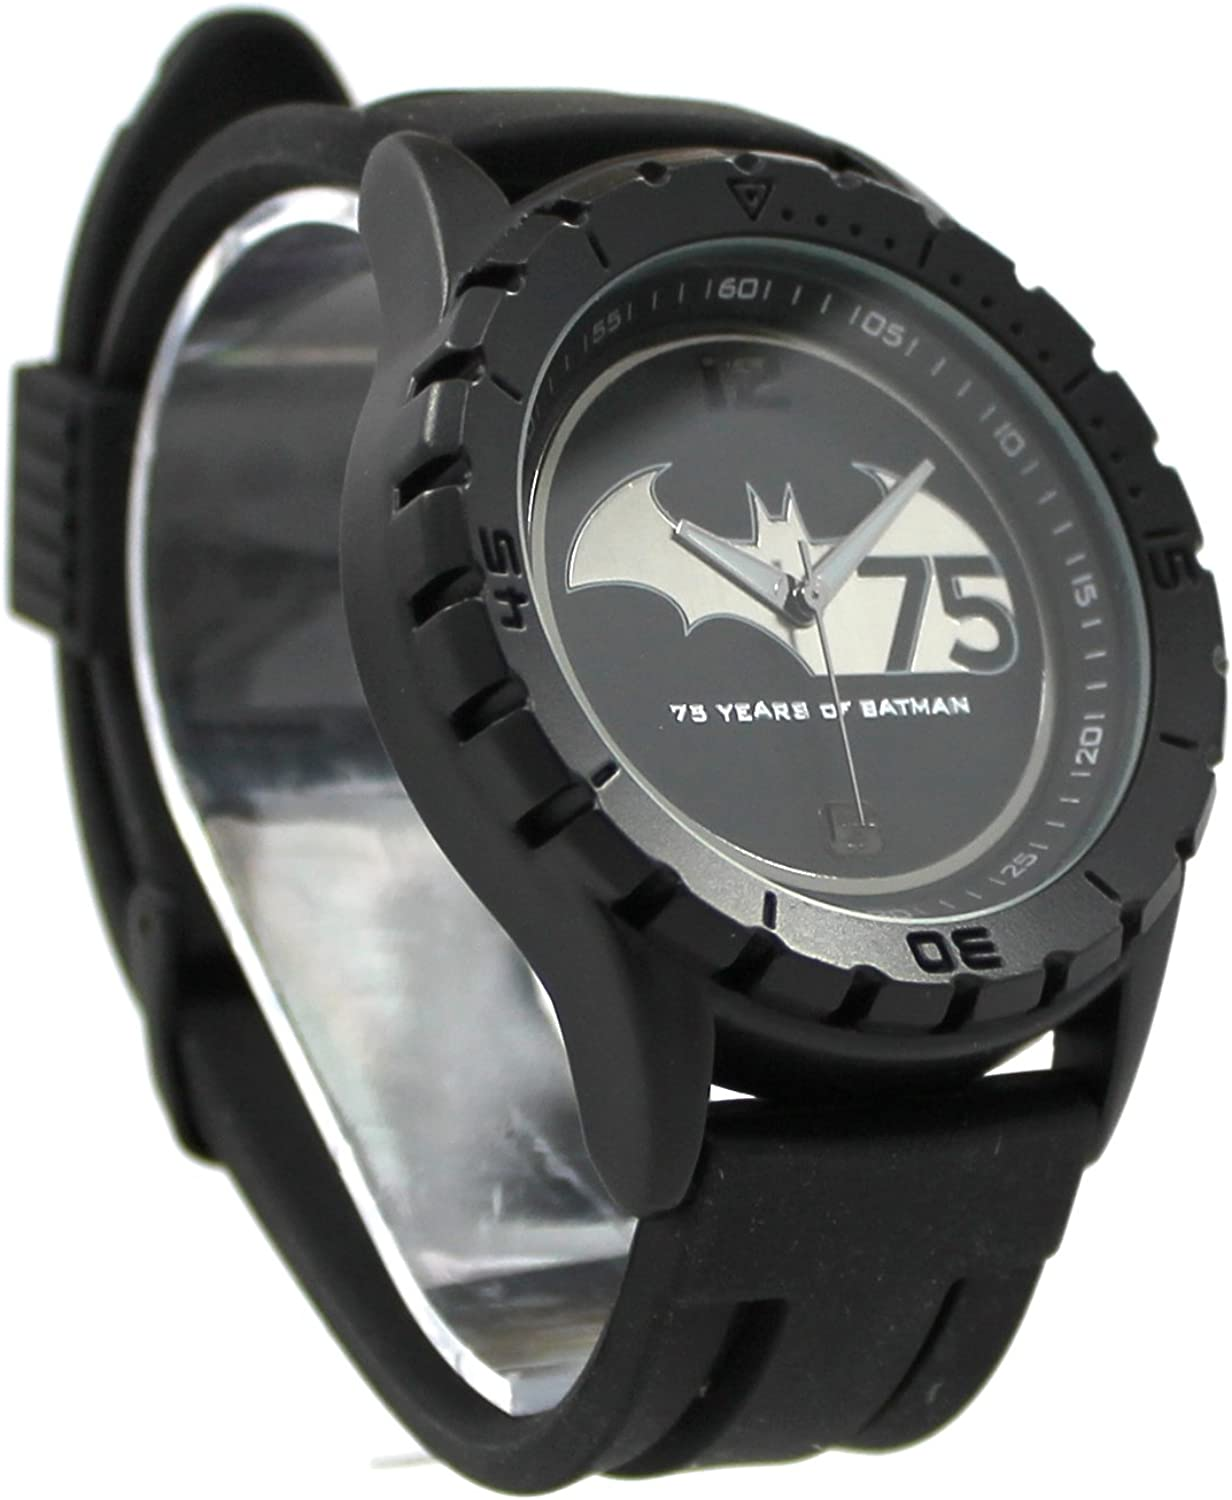 75 Years of Batman Black Stealth Mens Watch (BAT7001)